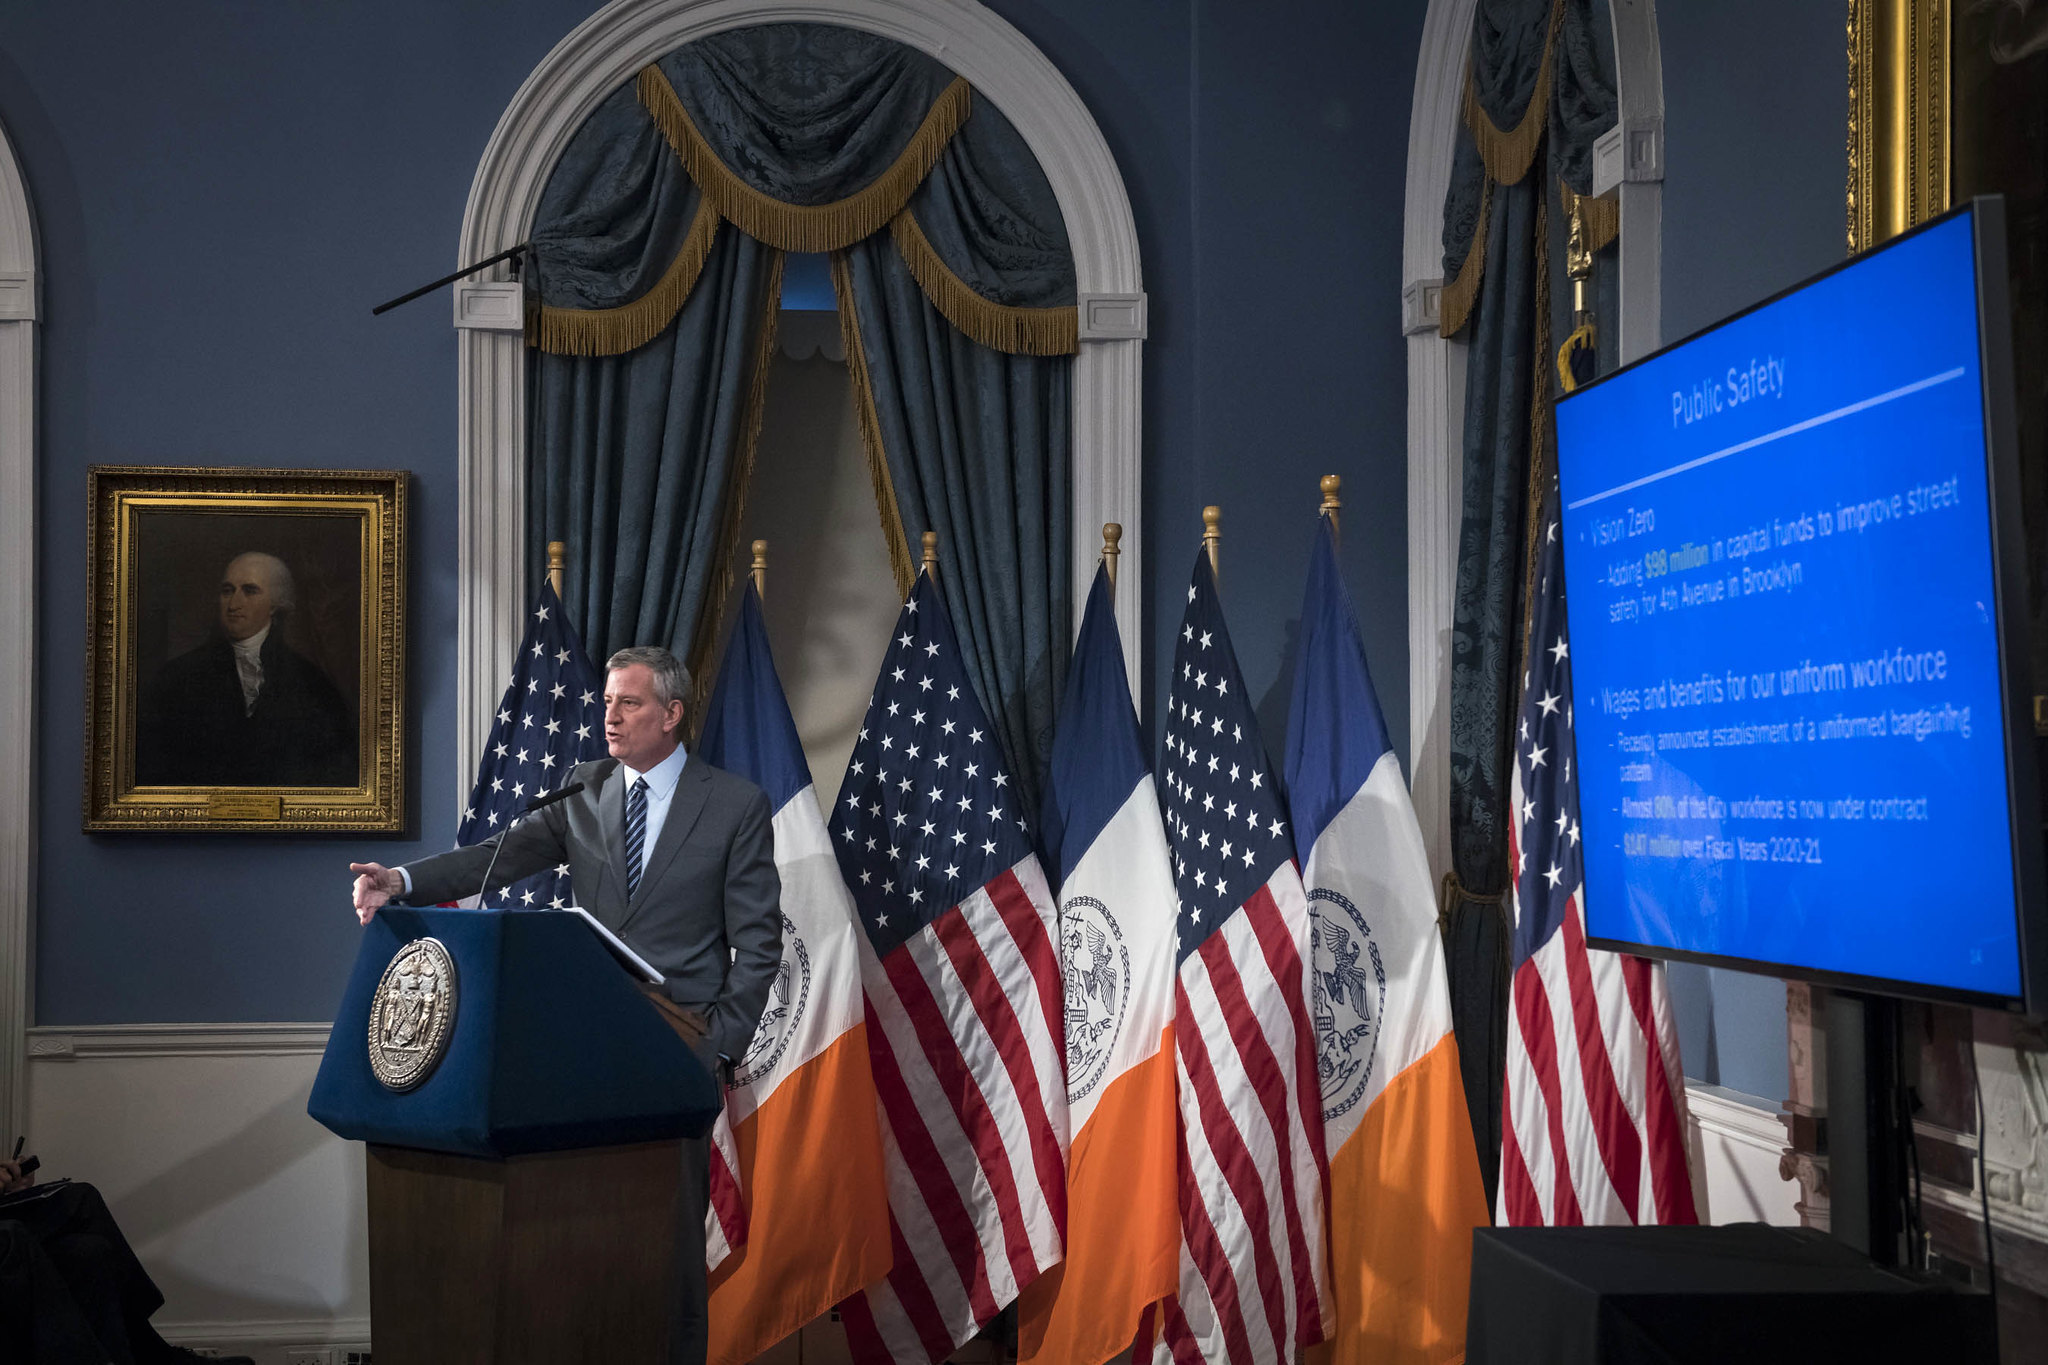 Slow your roll: De Blasio's new budget restrains spending, but payroll keeps growing